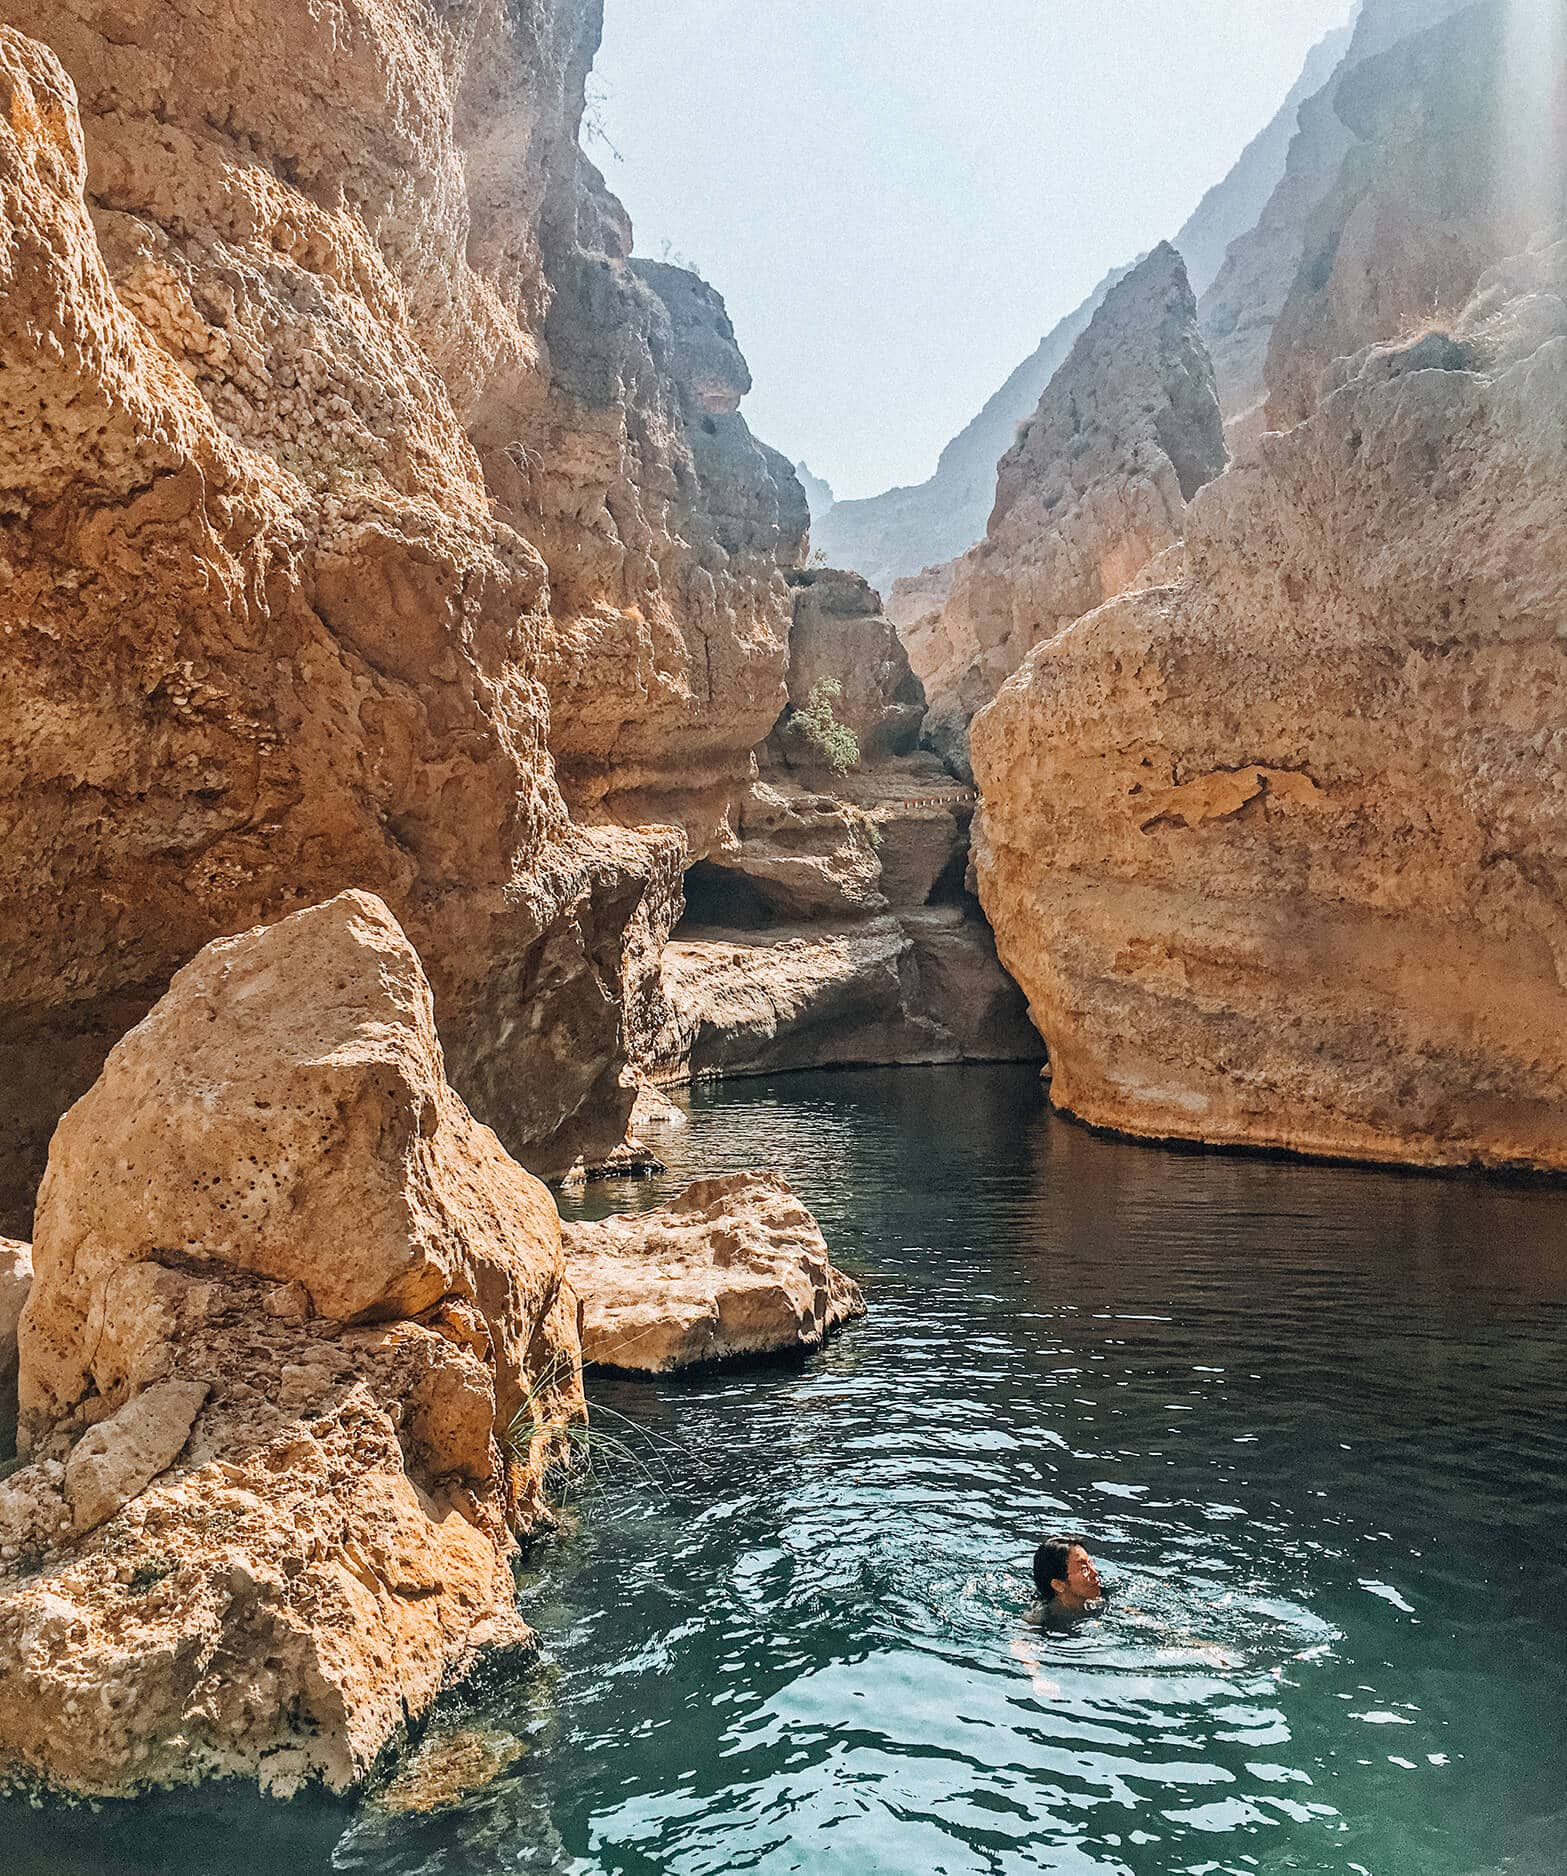 Travel bloggers reveal their most unforgettable travel experiences - Swimming in the wadis of Oman